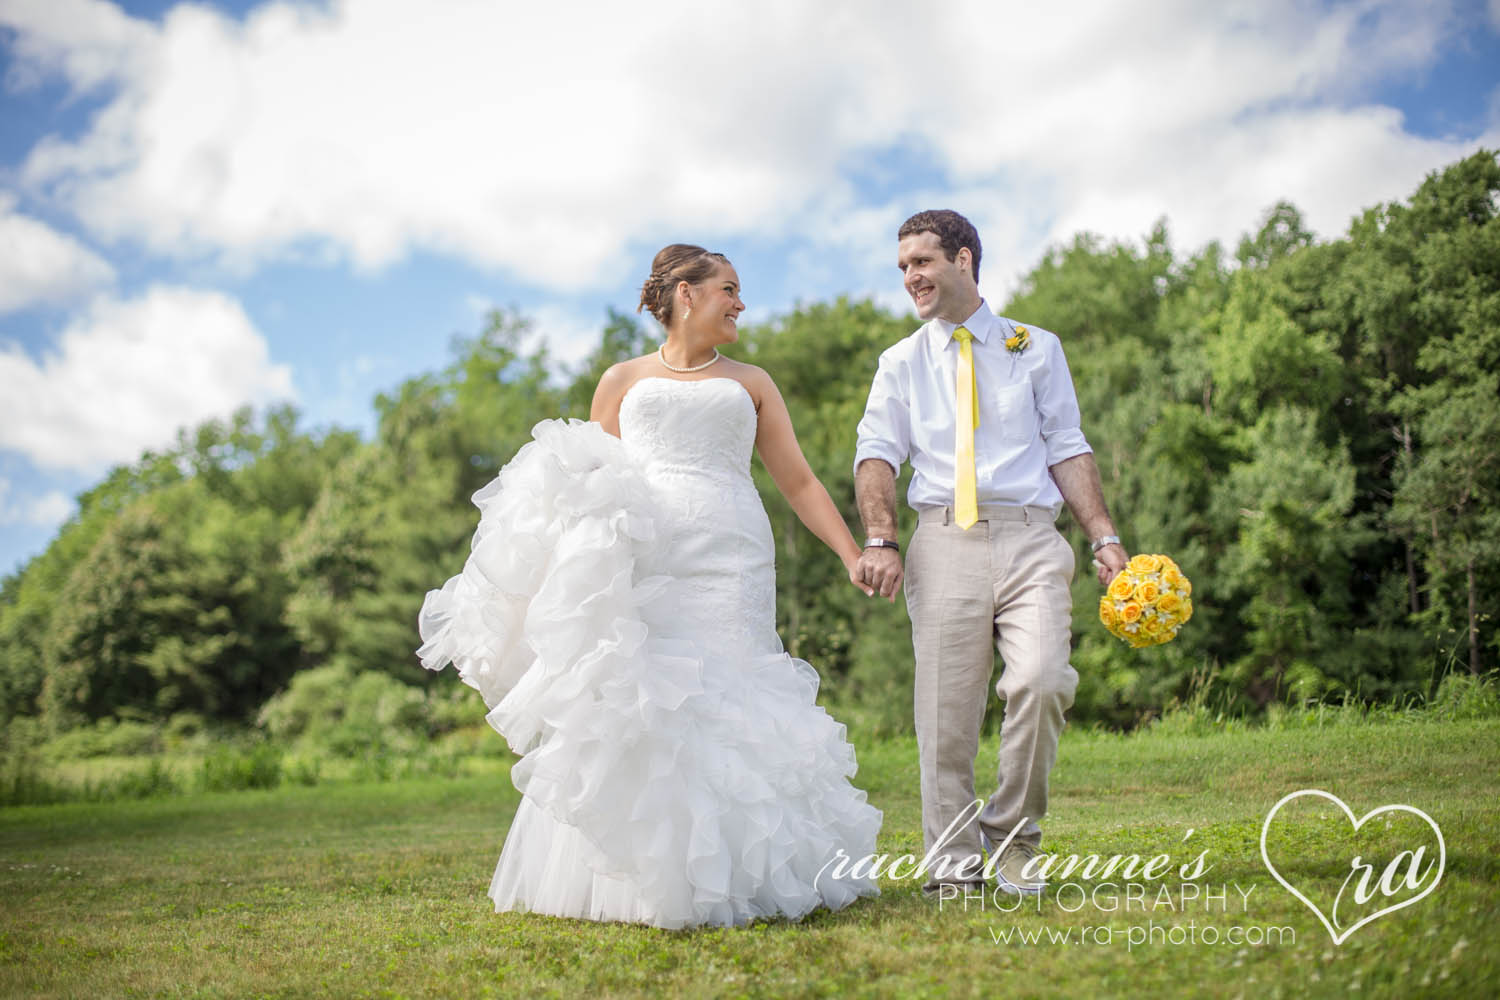 TKS-DUBOIS PA WEDDING-24.jpg